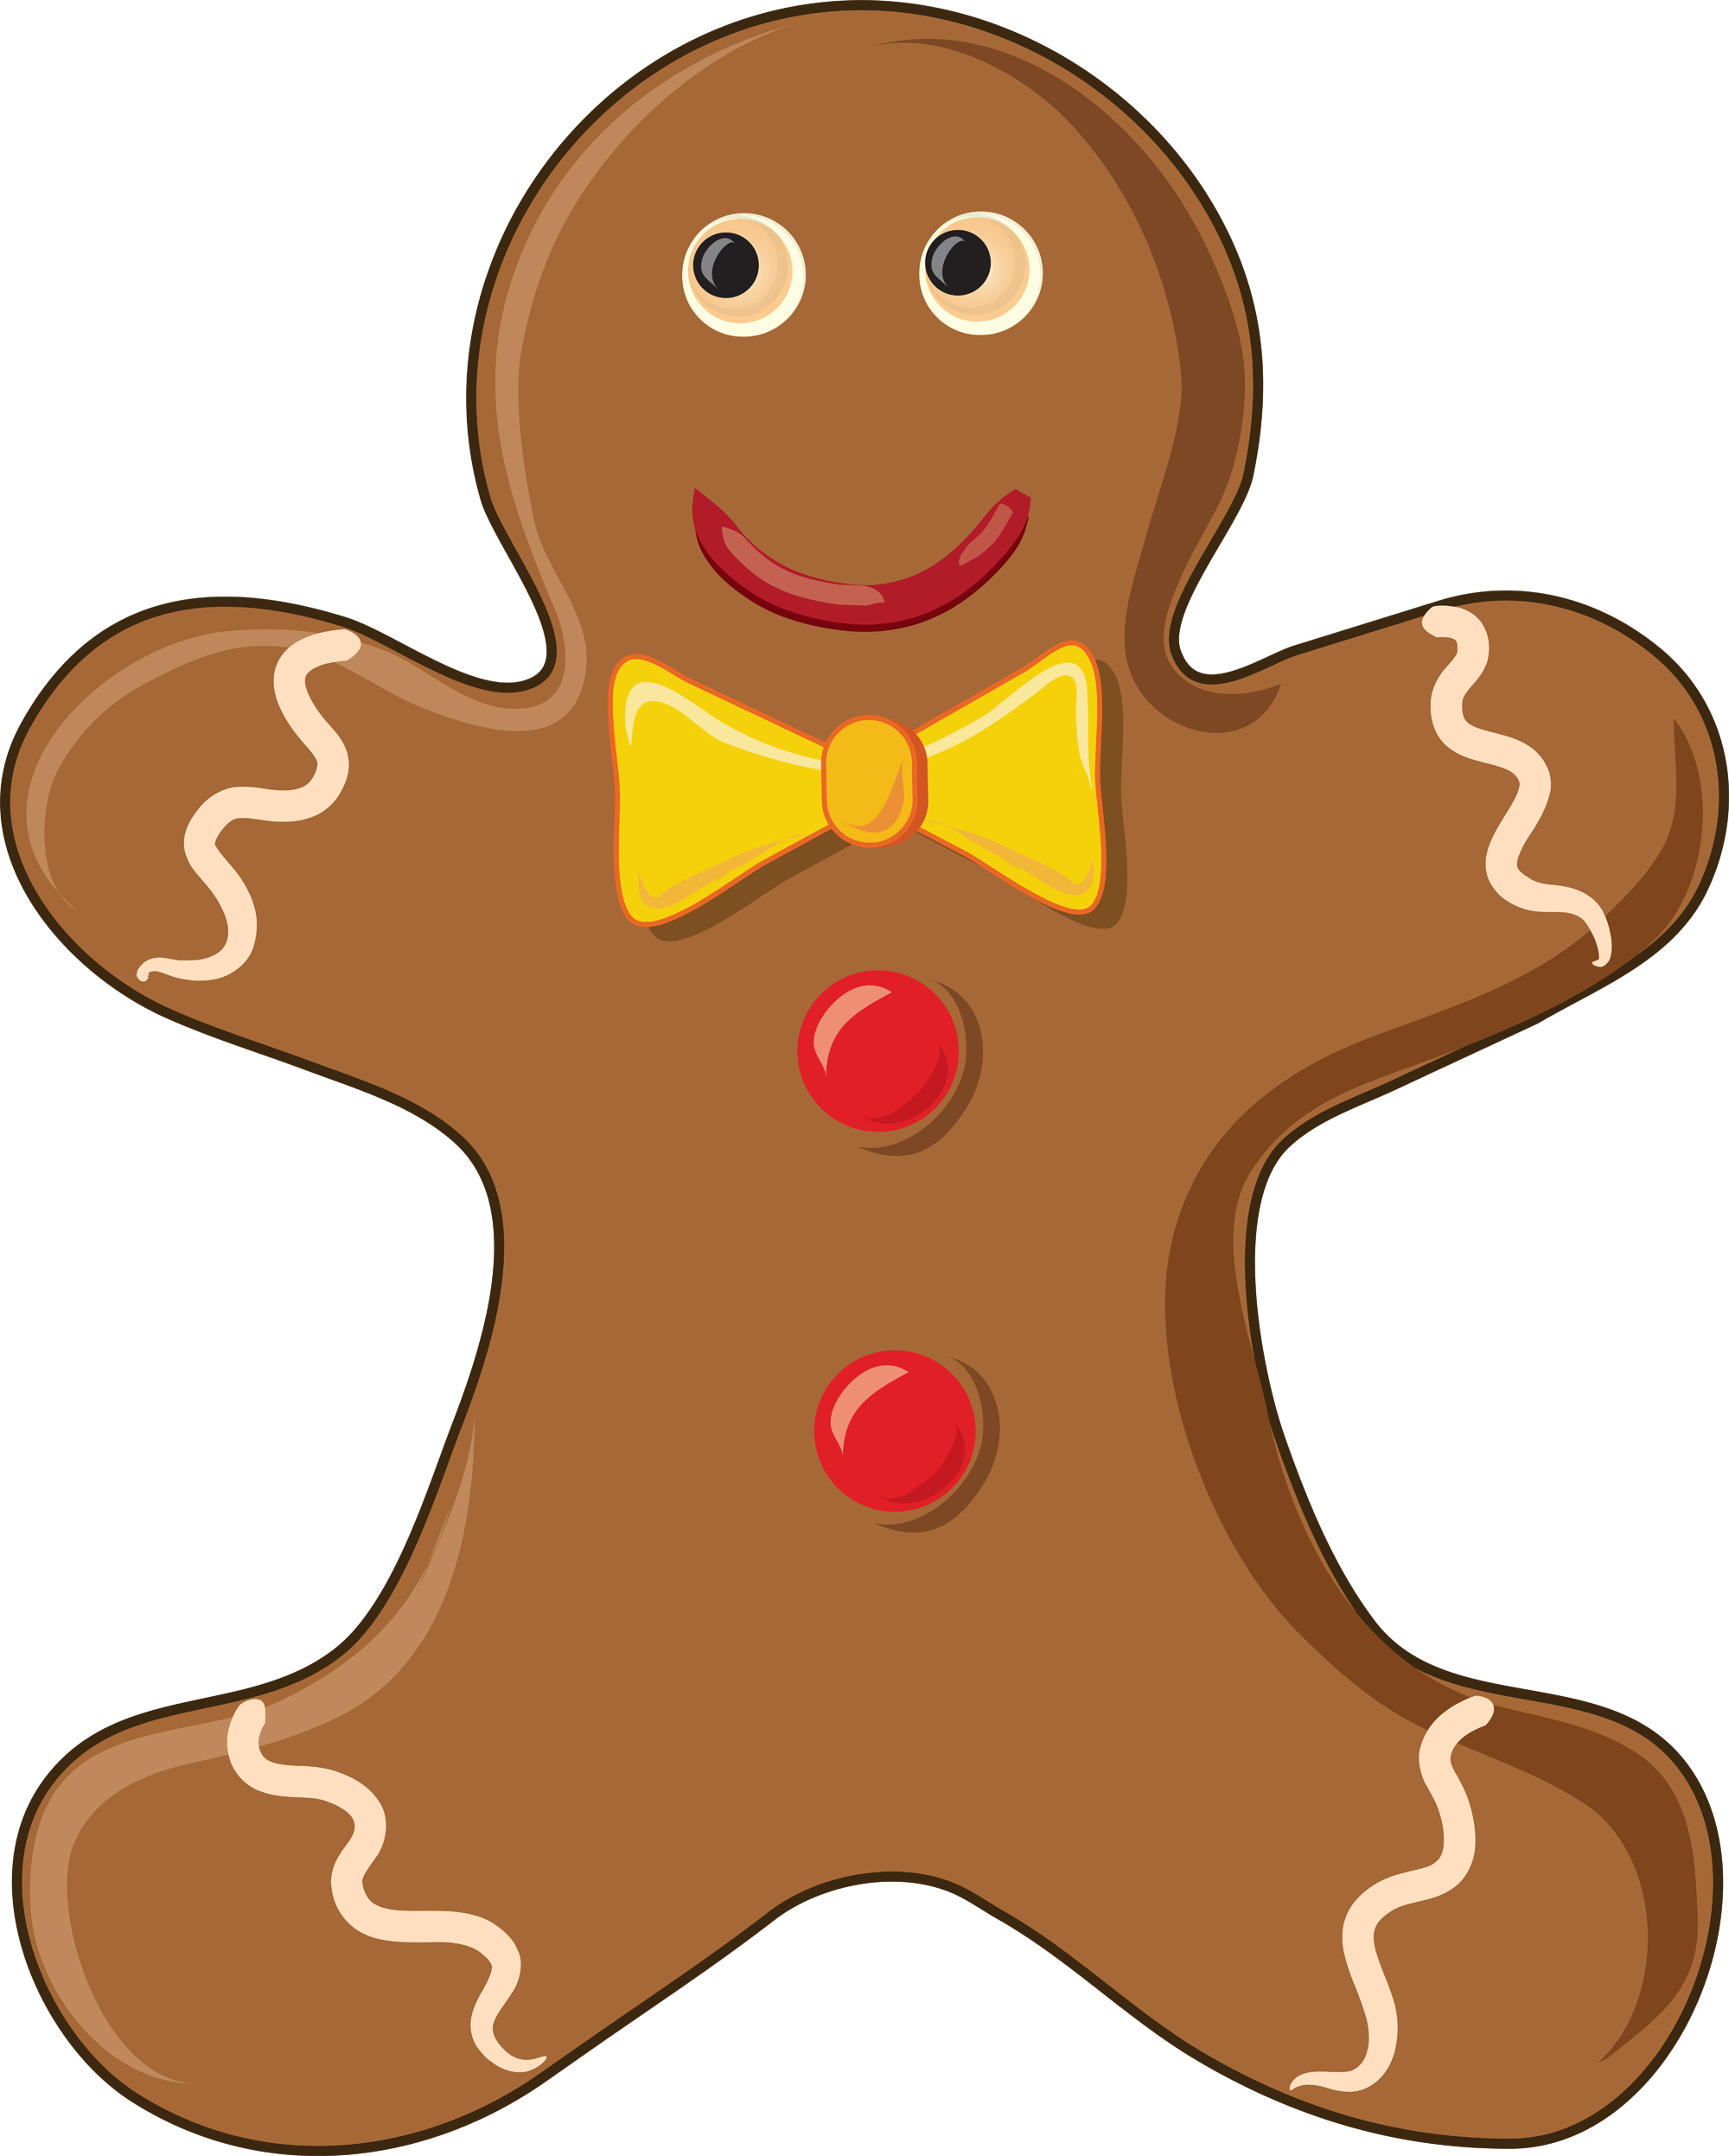 Free gingerbread men clipart library Free Gingerbread Man, Download Free Clip Art, Free Clip Art on ... library